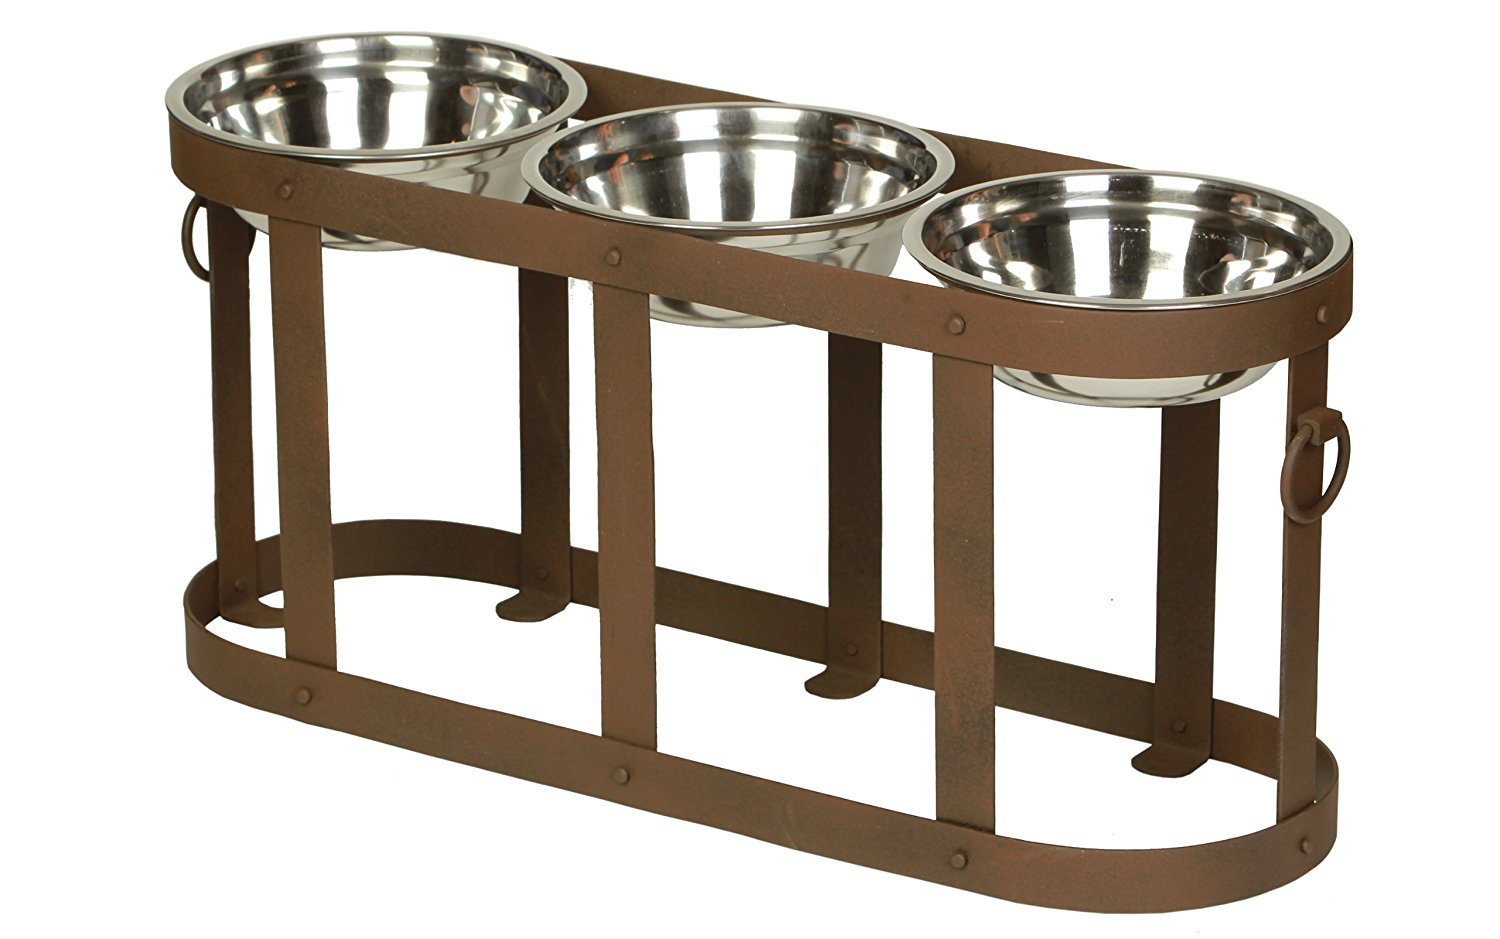 Unleashed Life Tripoli Table for Pets, Large by Unleashed Life